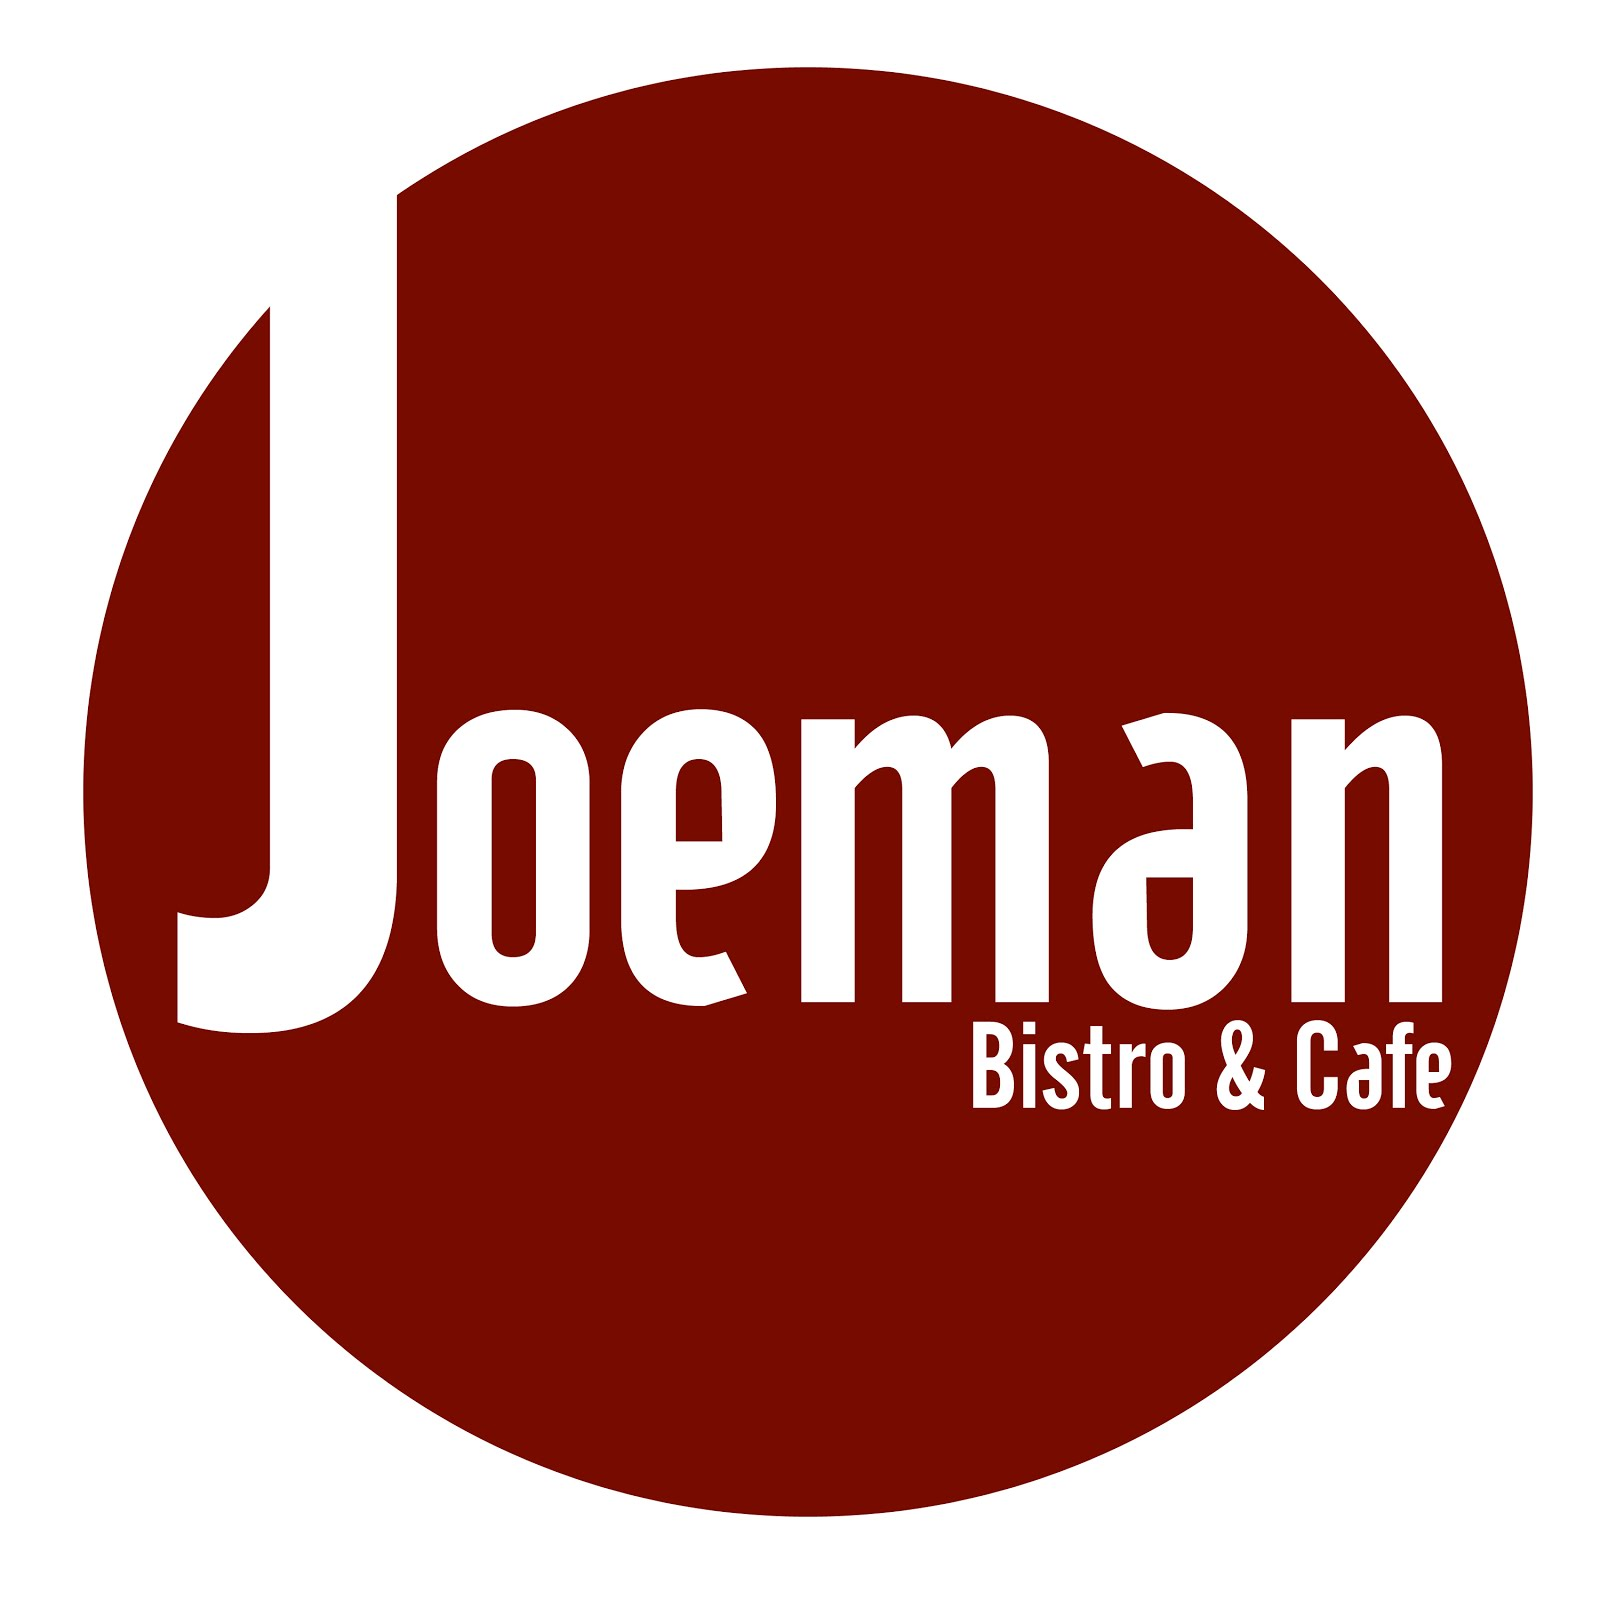 Simply Delicious by Joeman Bistro & Cafe